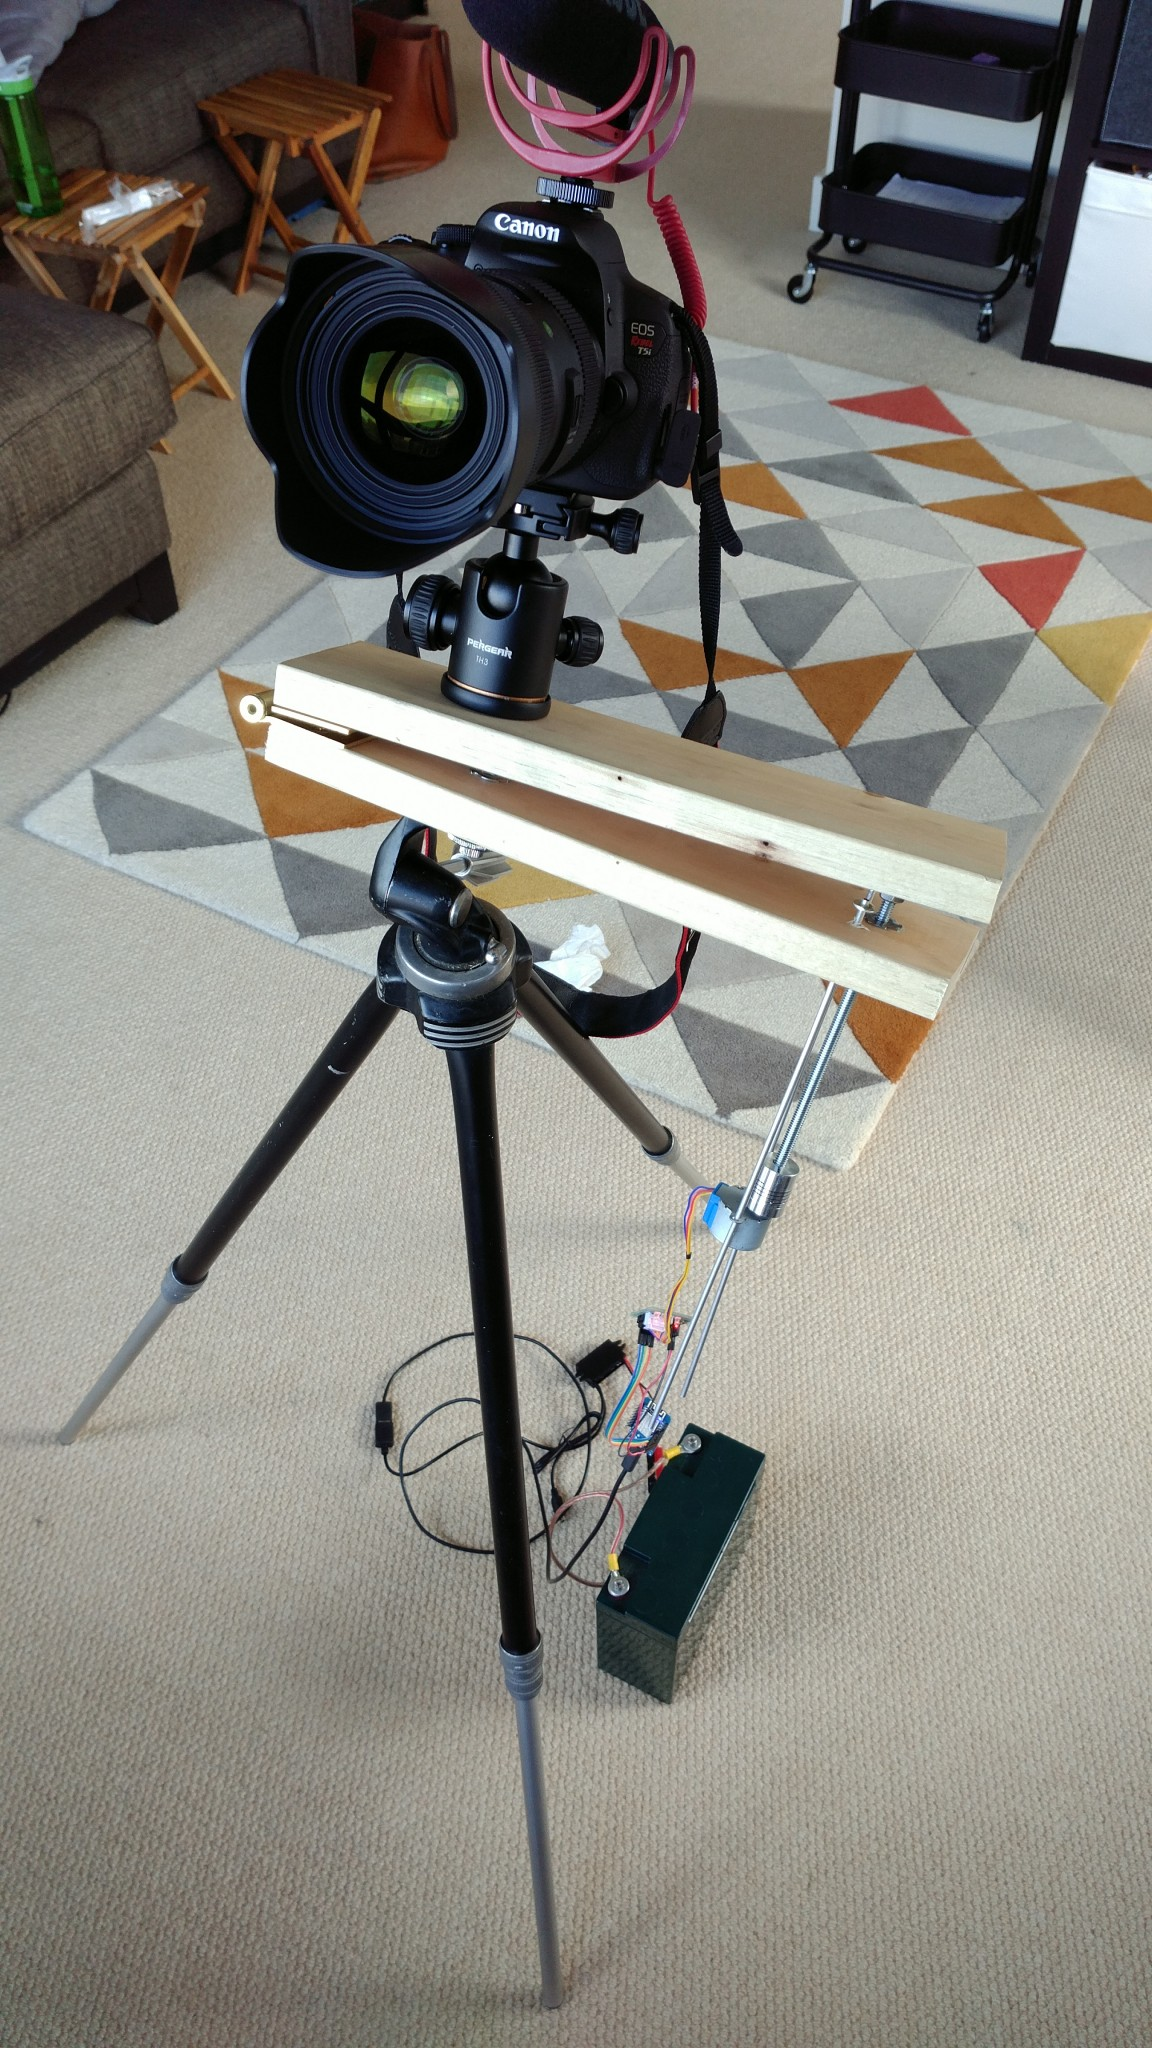 Making a cheap and simple barn-door star tracker with